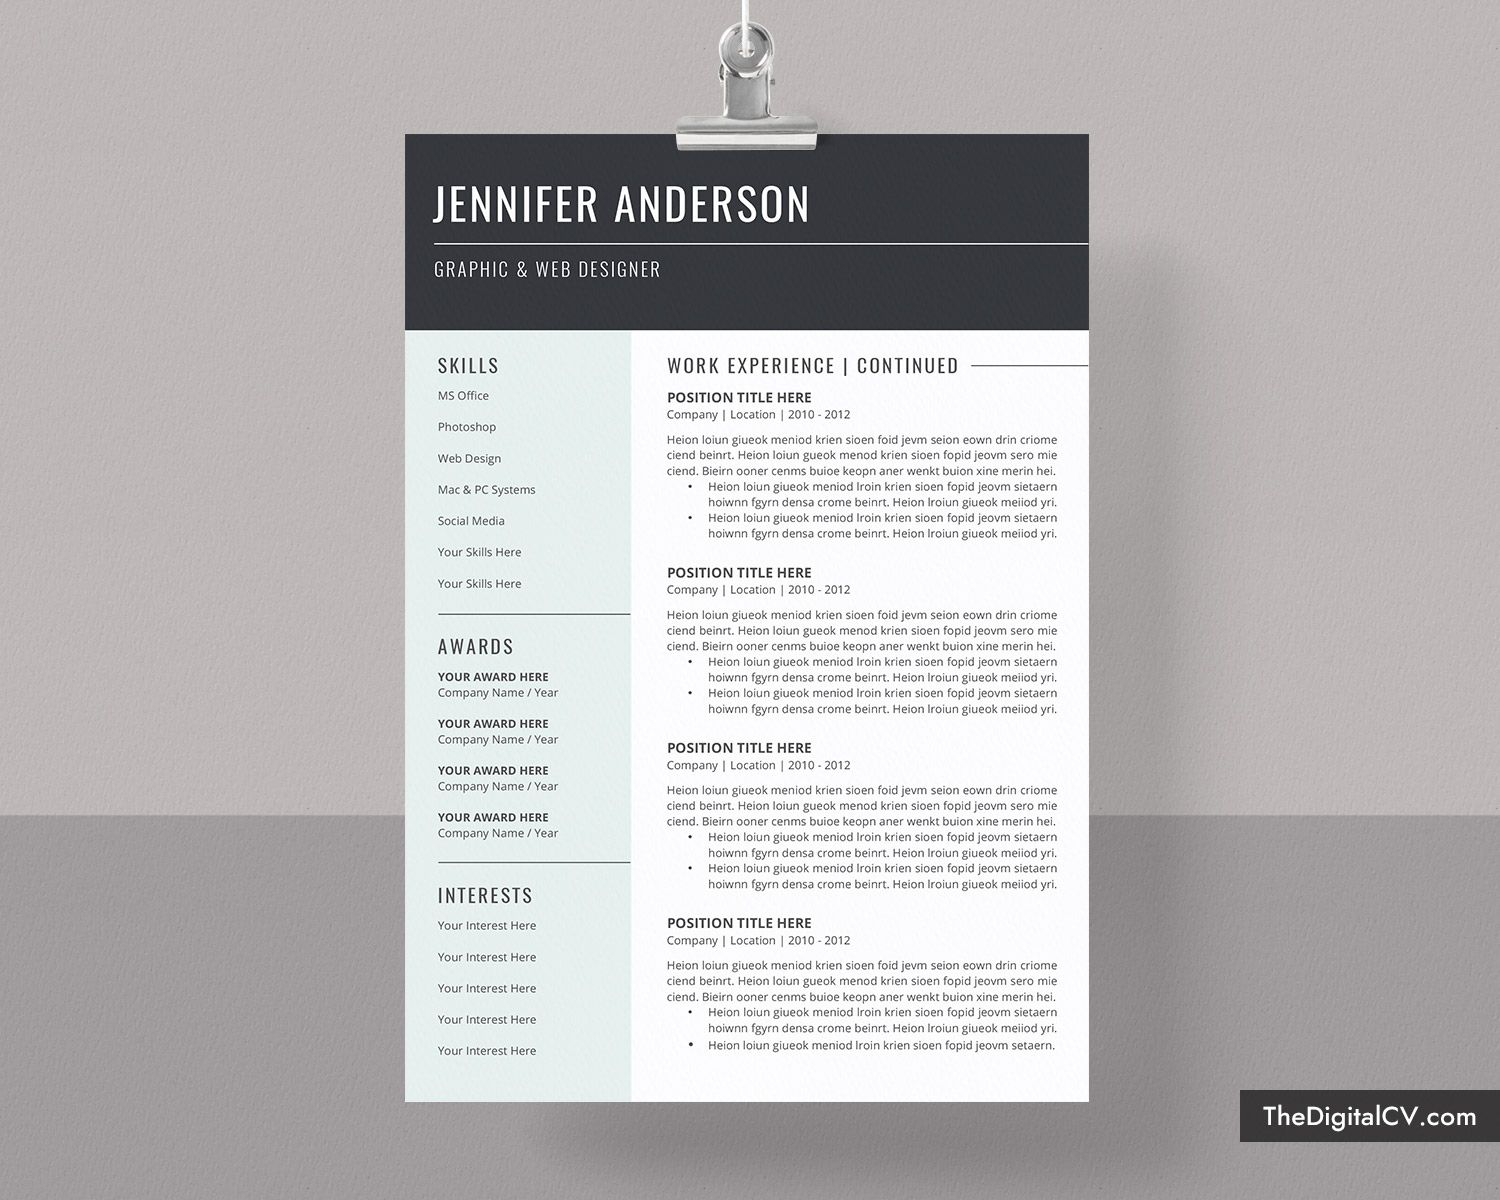 Basic And Simple Resume Template 20202021, Cv Template